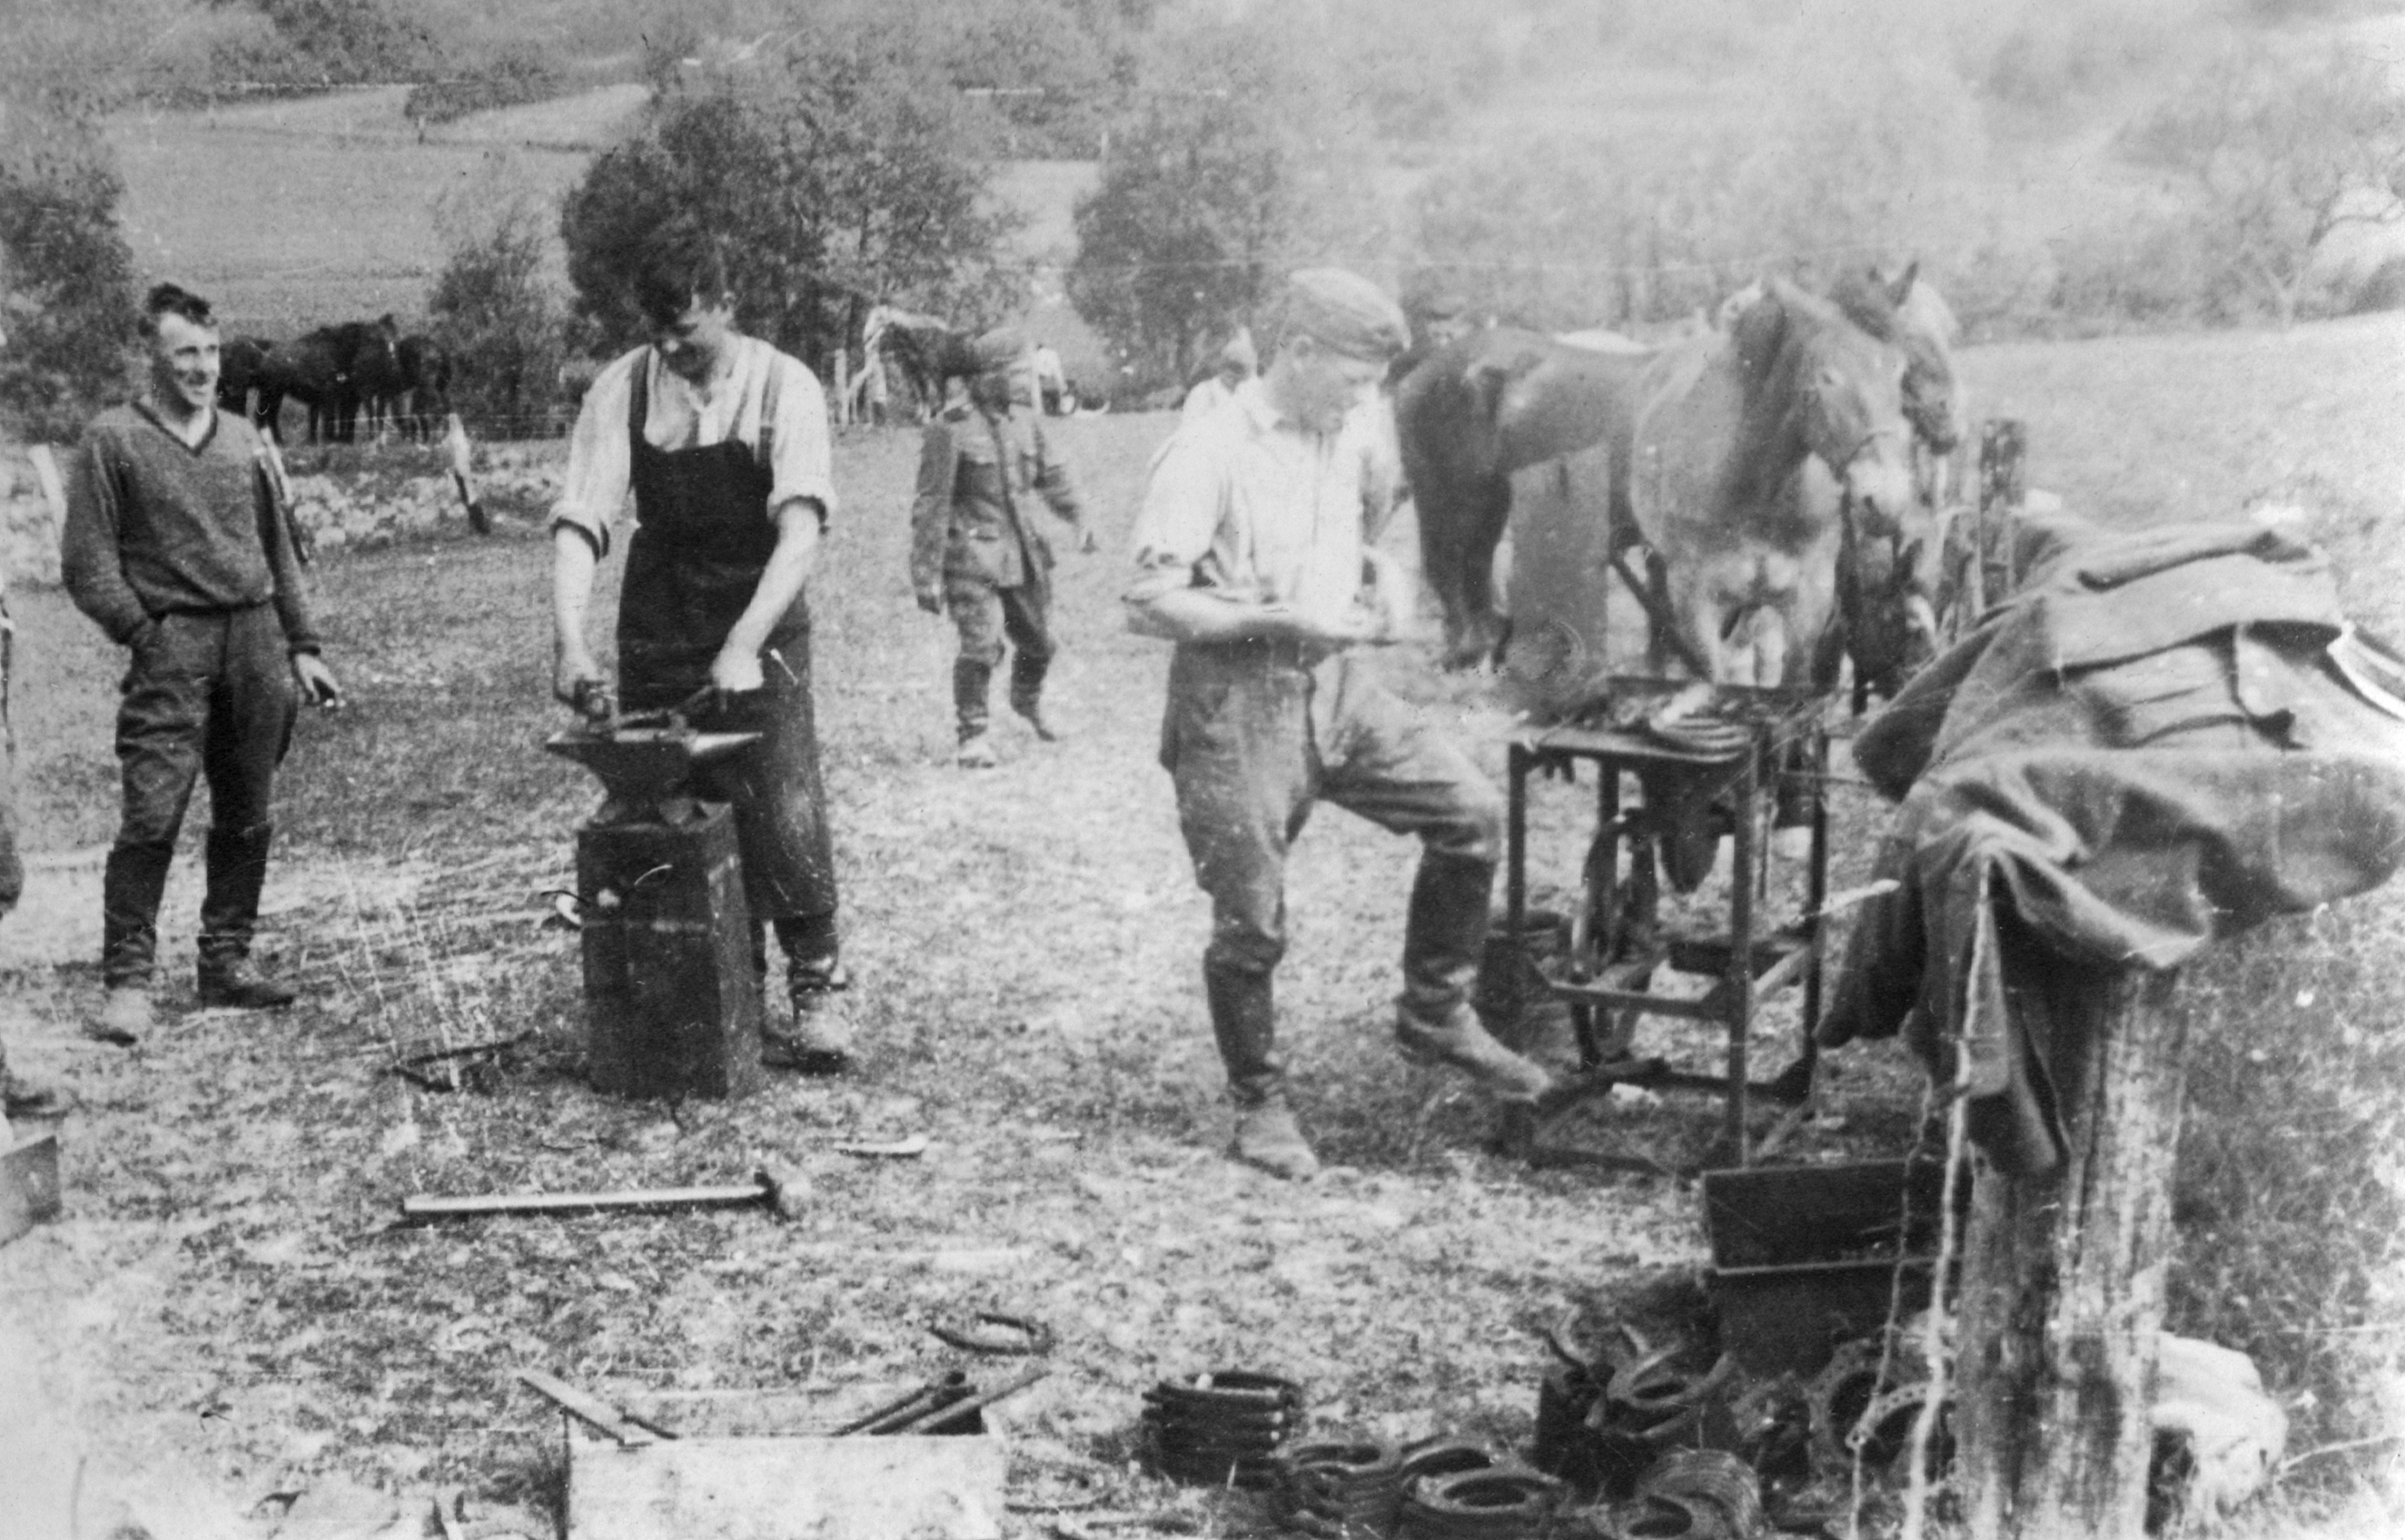 https://de.wikipedia.org/wiki/Schmiede#/media/File:Wehrmacht_Feldschmiede_Battlefield_Forge.jpeg